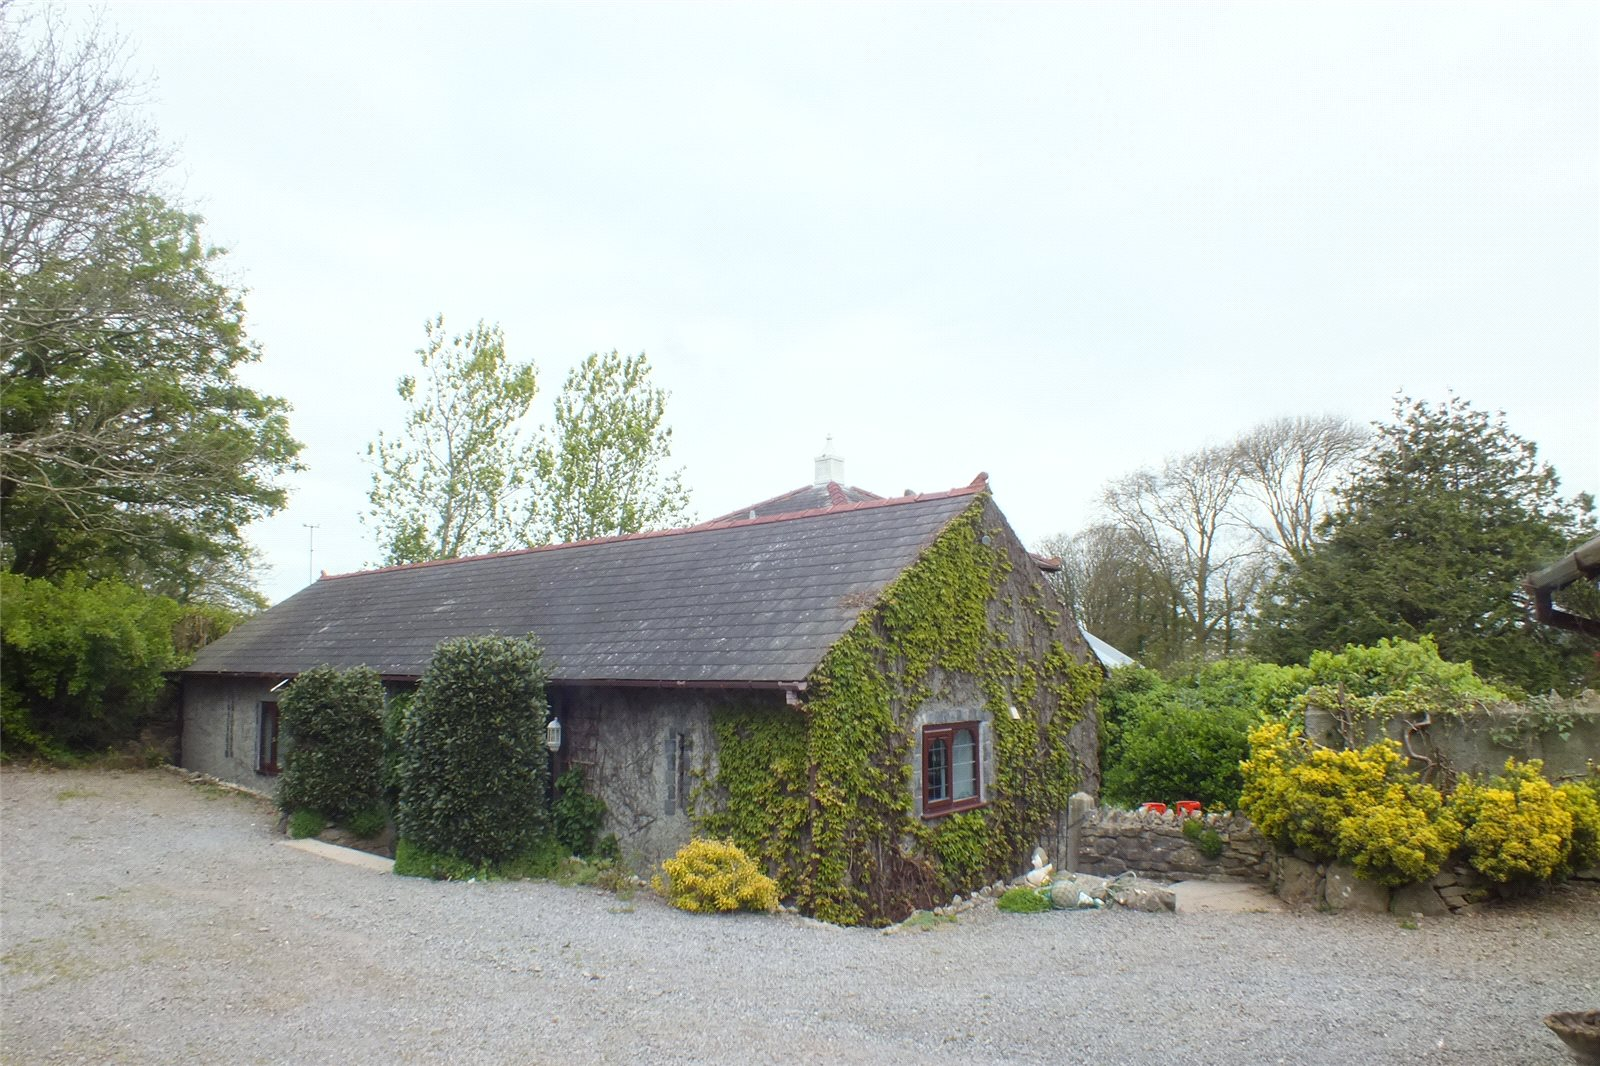 4 Bedrooms Detached Bungalow for sale in Sequoia Lodge, West Grove Lane, Hundleton, Pembroke